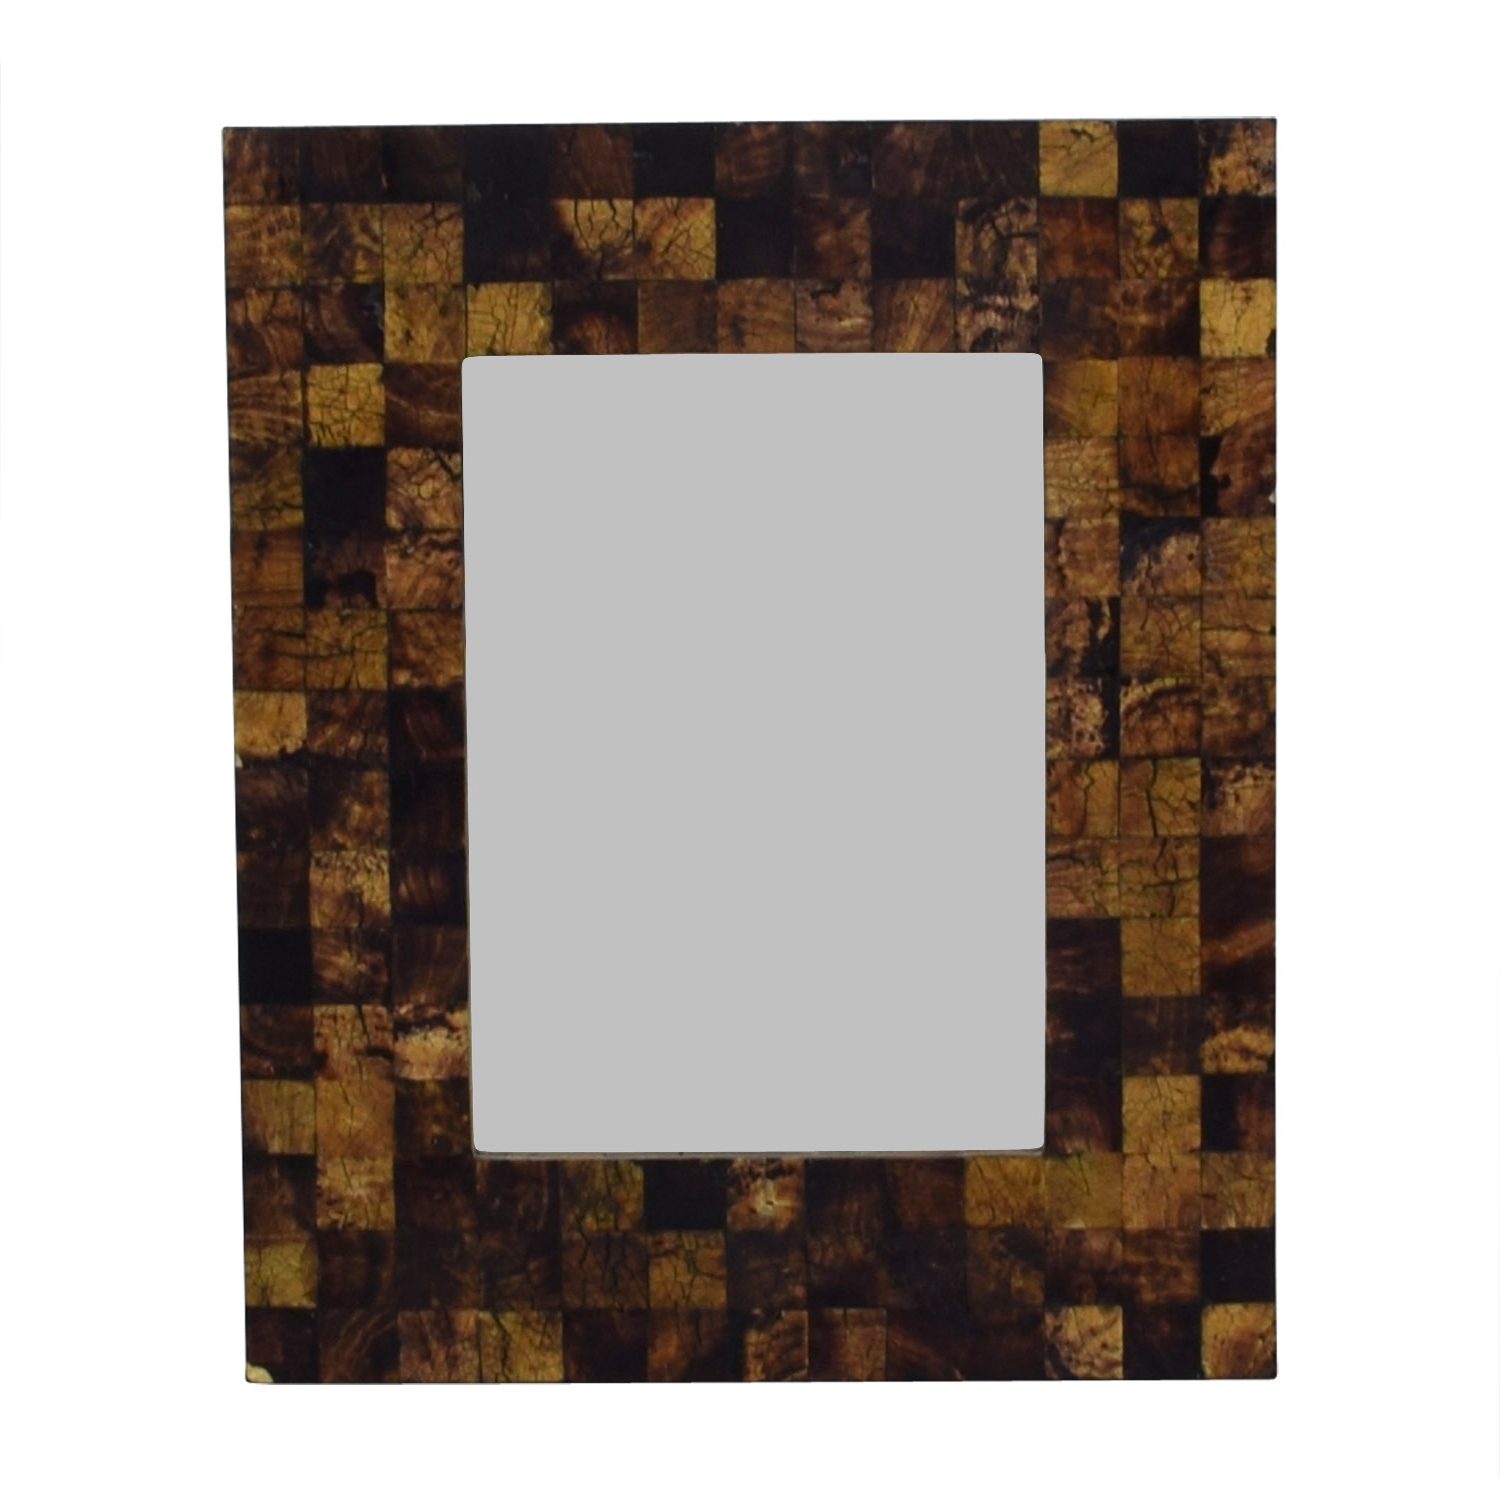 [%75% Off – Pottery Barn Pottery Barn Crackled Wood Framed Wall Mirror / Decor Within Preferred Pottery Barn Wall Mirrors|Pottery Barn Wall Mirrors Within Fashionable 75% Off – Pottery Barn Pottery Barn Crackled Wood Framed Wall Mirror / Decor|Famous Pottery Barn Wall Mirrors Inside 75% Off – Pottery Barn Pottery Barn Crackled Wood Framed Wall Mirror / Decor|Best And Newest 75% Off – Pottery Barn Pottery Barn Crackled Wood Framed Wall Mirror / Decor In Pottery Barn Wall Mirrors%] (View 3 of 20)